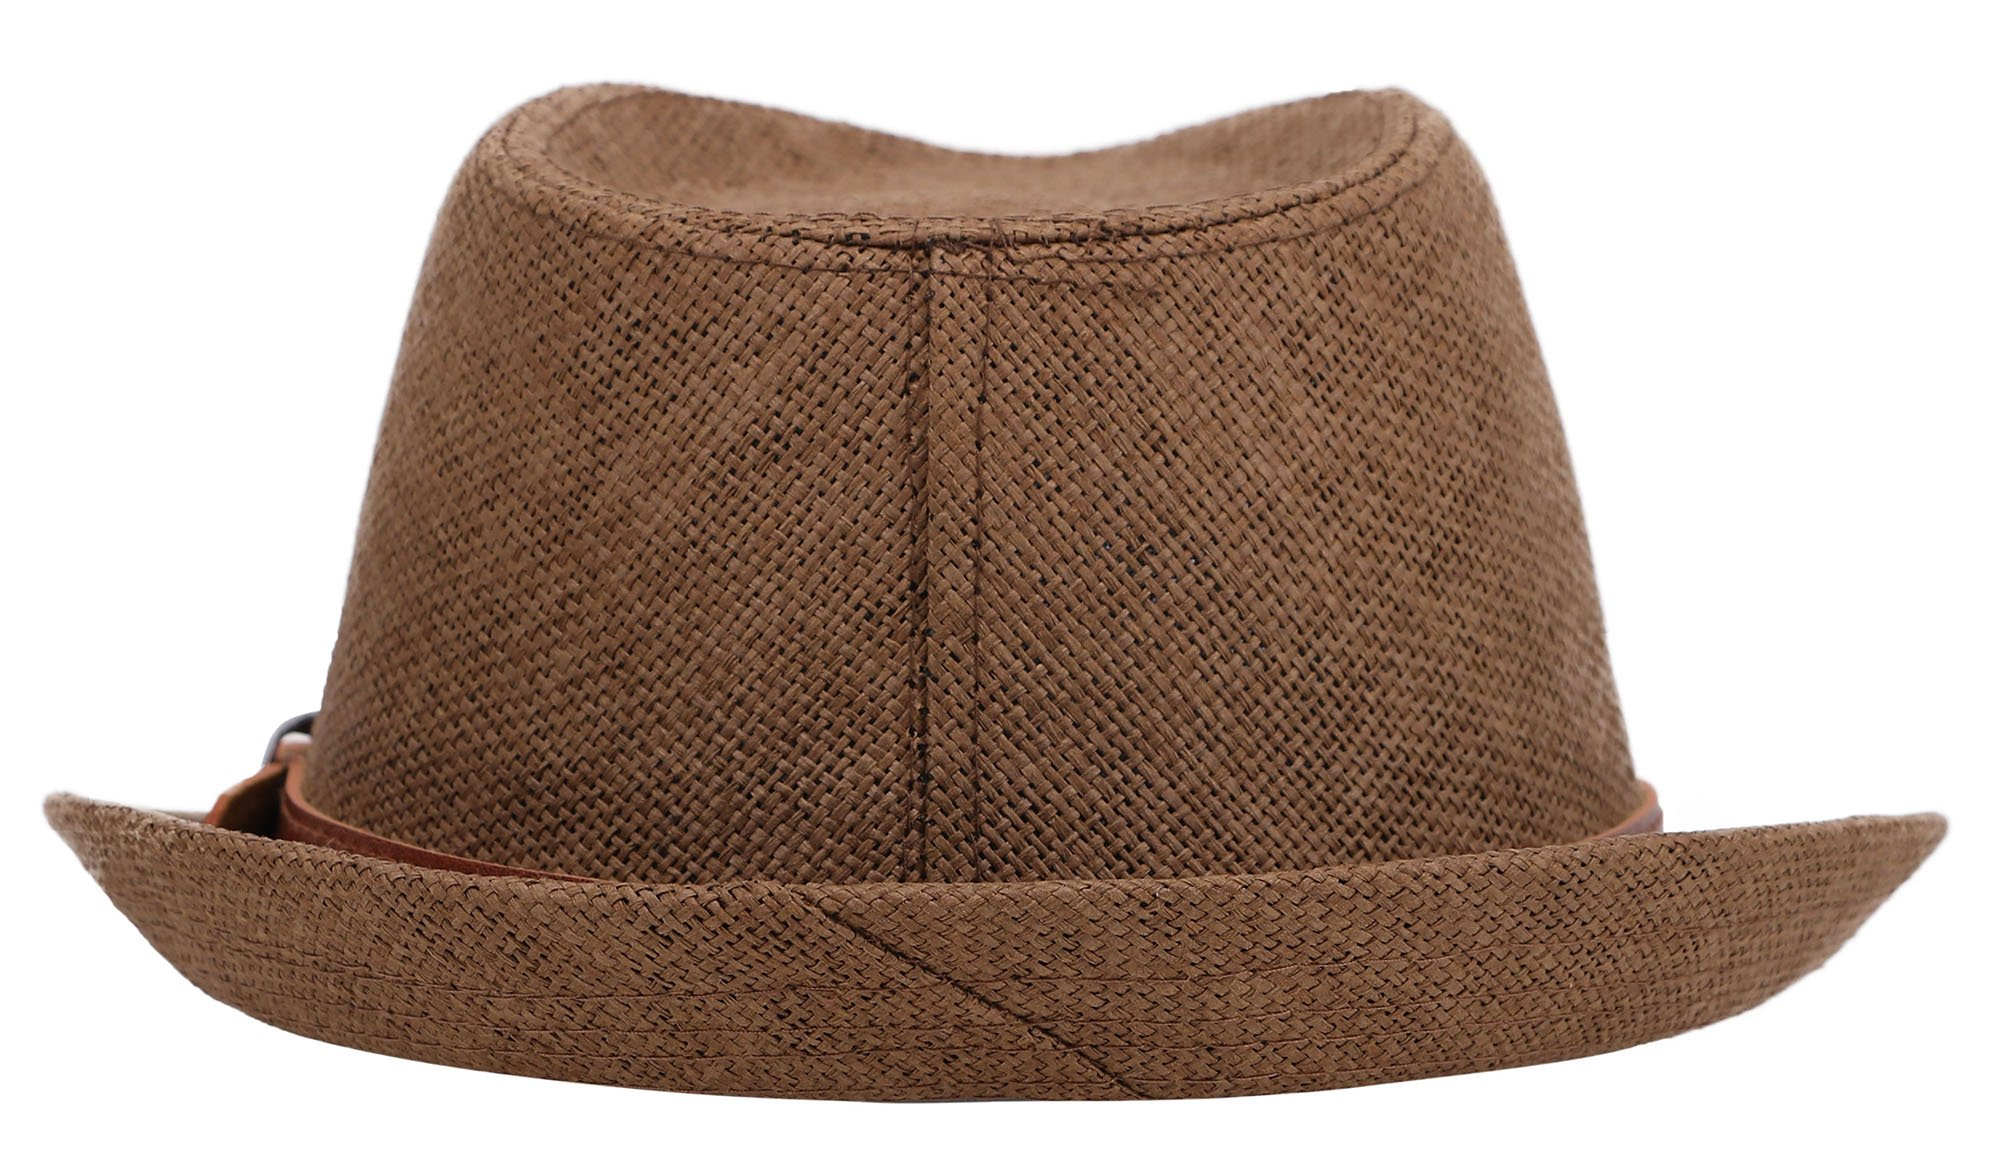 Jasmine Straw Hat Men Classic Short Brim Miami Beach Panama Fedora Straw Hat,LXL